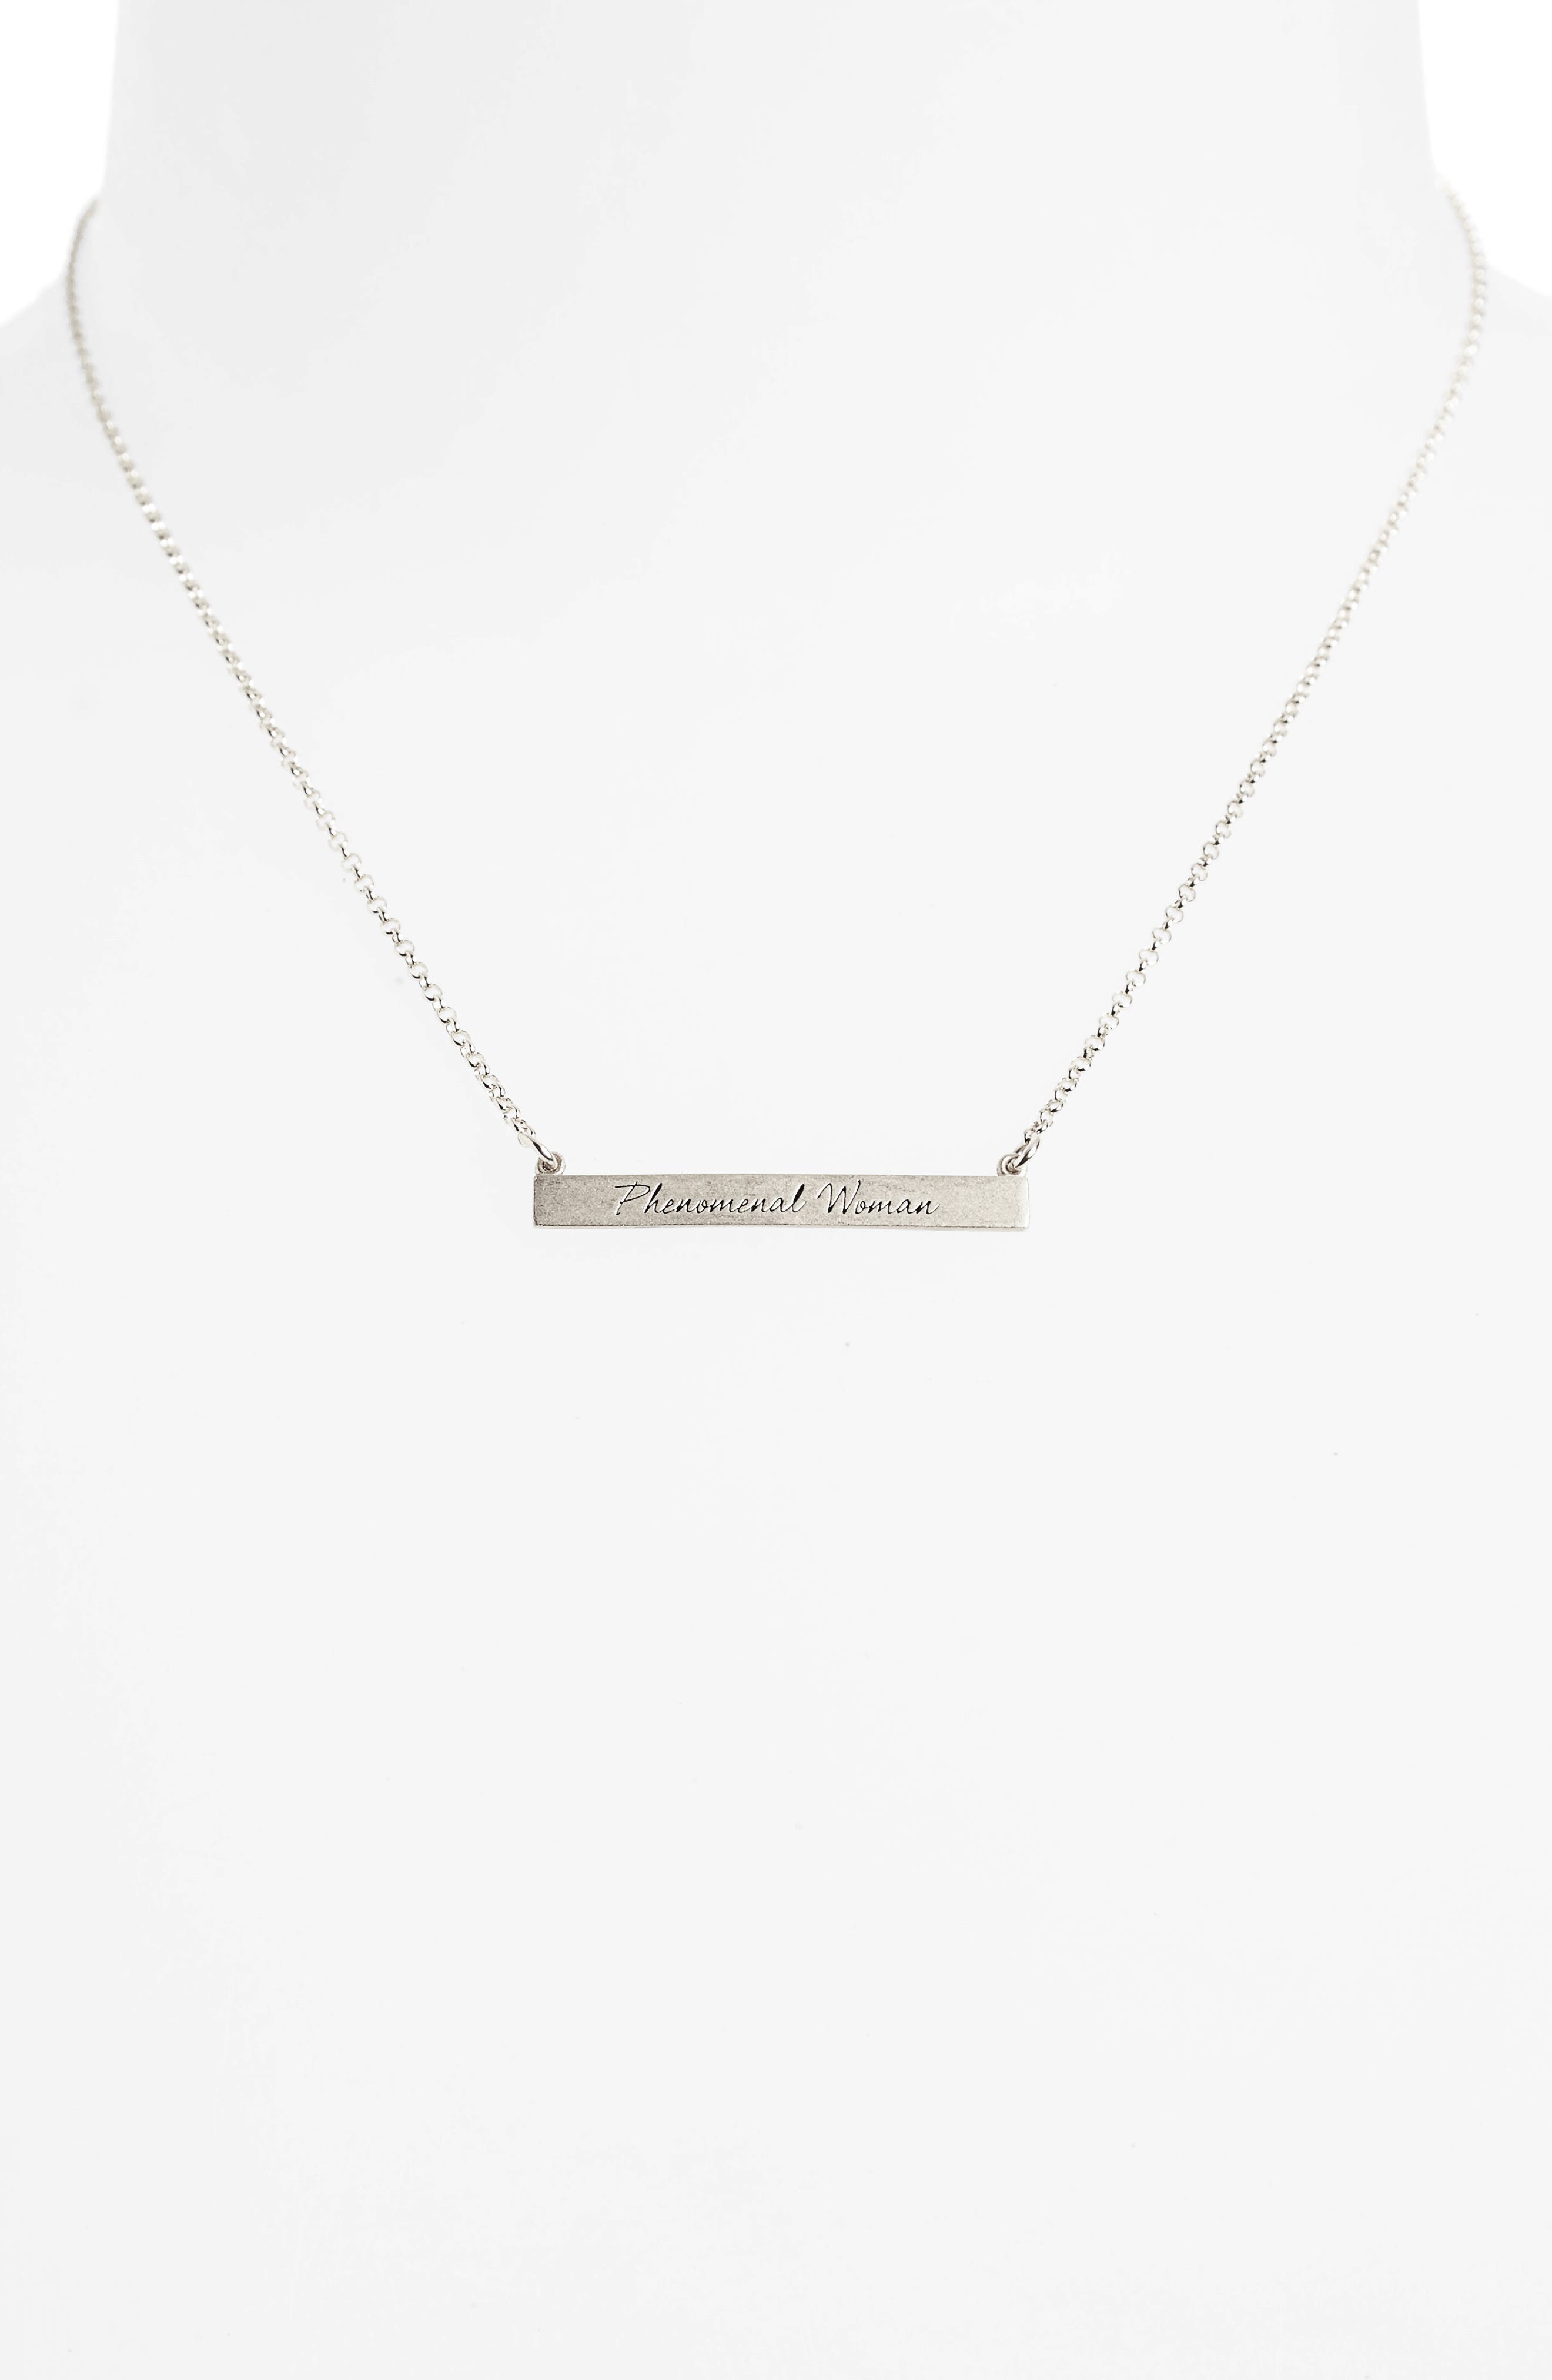 Legacy Collection - Phenomenal Women Bar Necklace,                             Alternate thumbnail 2, color,                             040